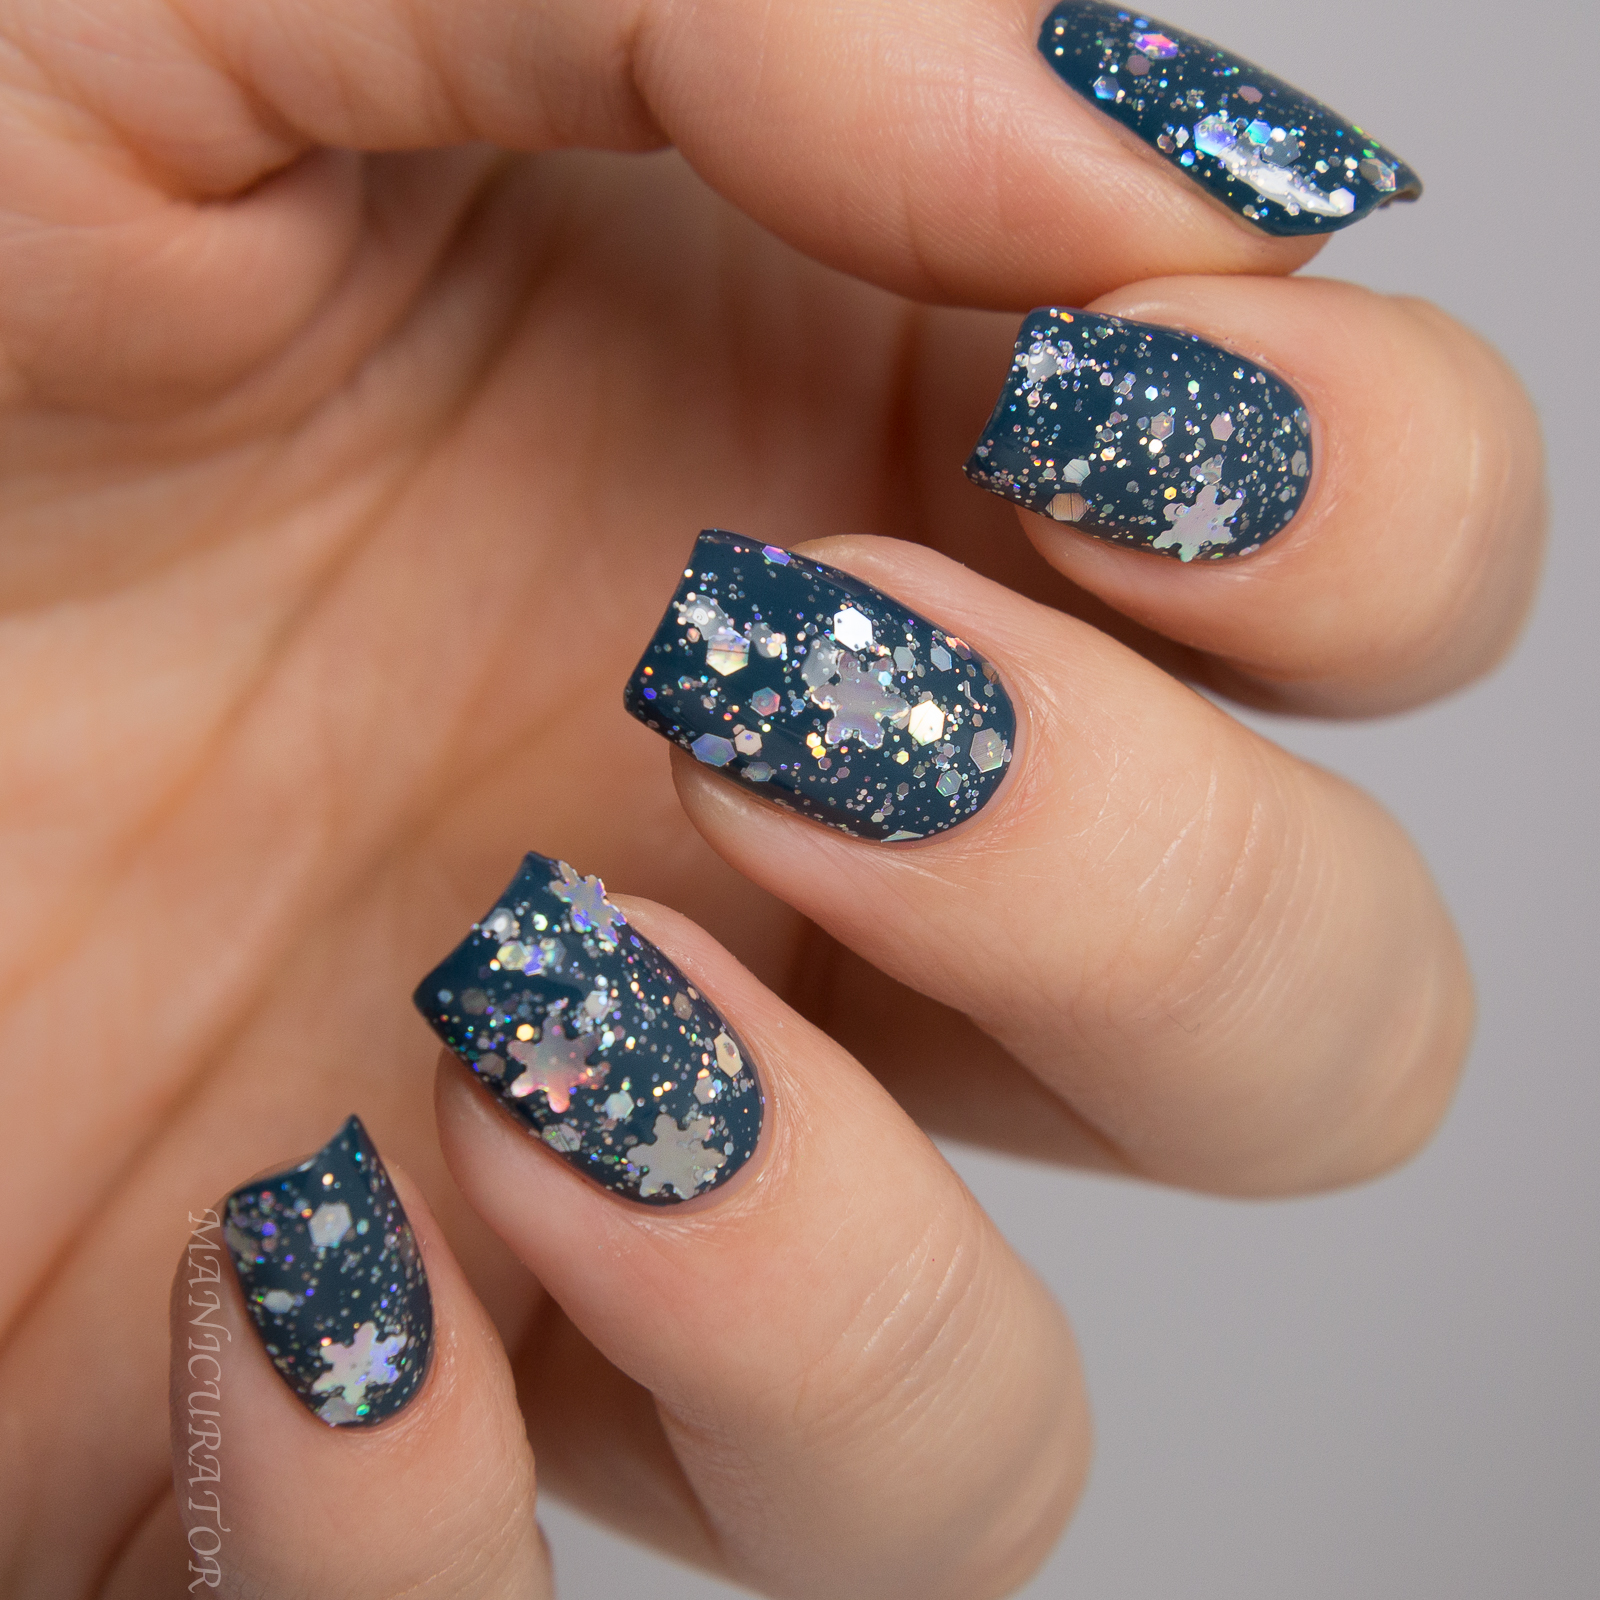 KBShimmer-Winter-2014-Flake-Dance-Swatch